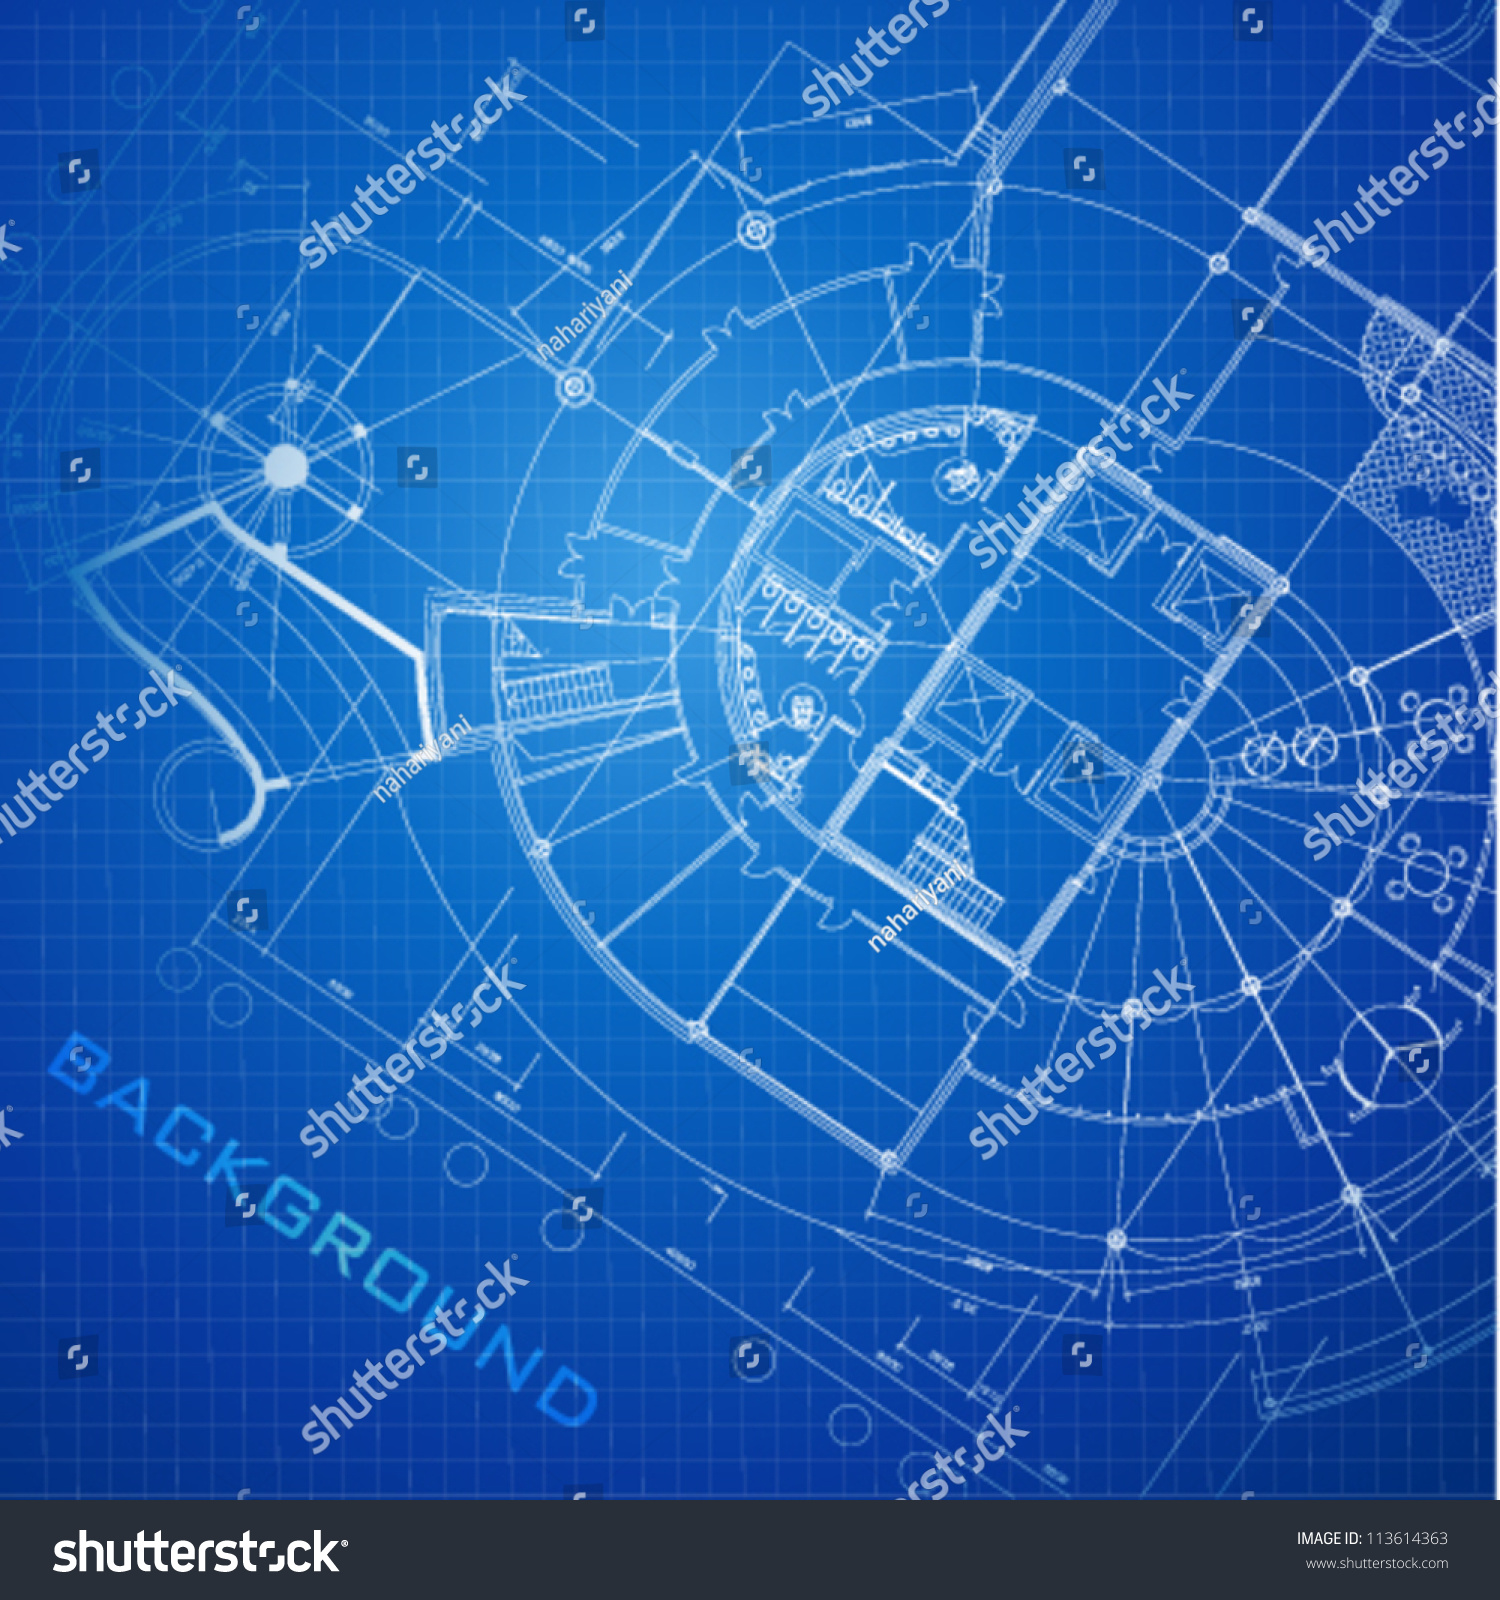 Urban Blueprint Vector Architectural Background Part Stock Vector 1500x1600